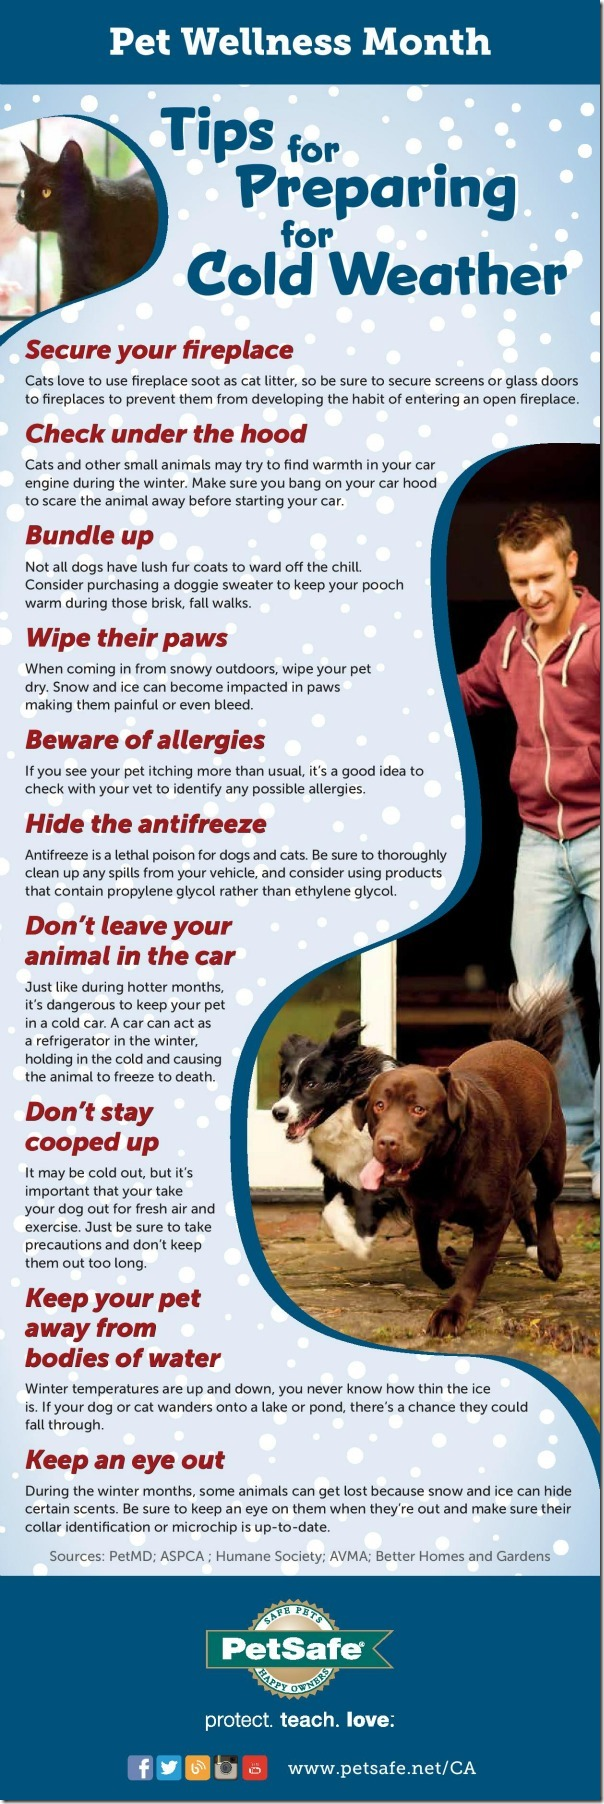 Pet Wellness Month Cold Weather and Pets Infographic from PetSafe